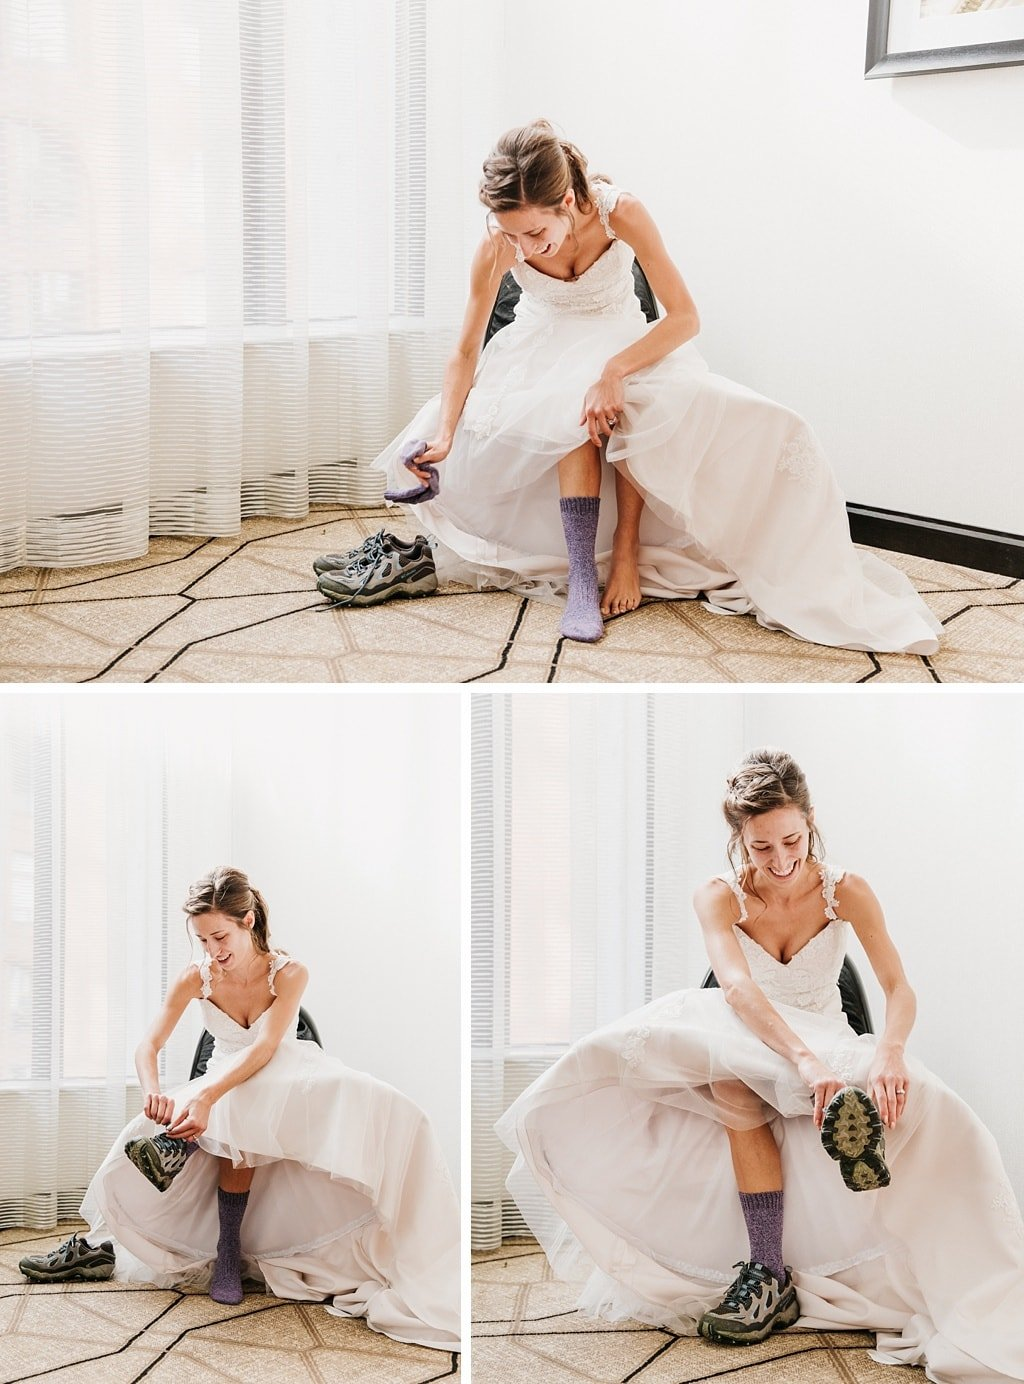 Bride putting on hiking boots for wedding